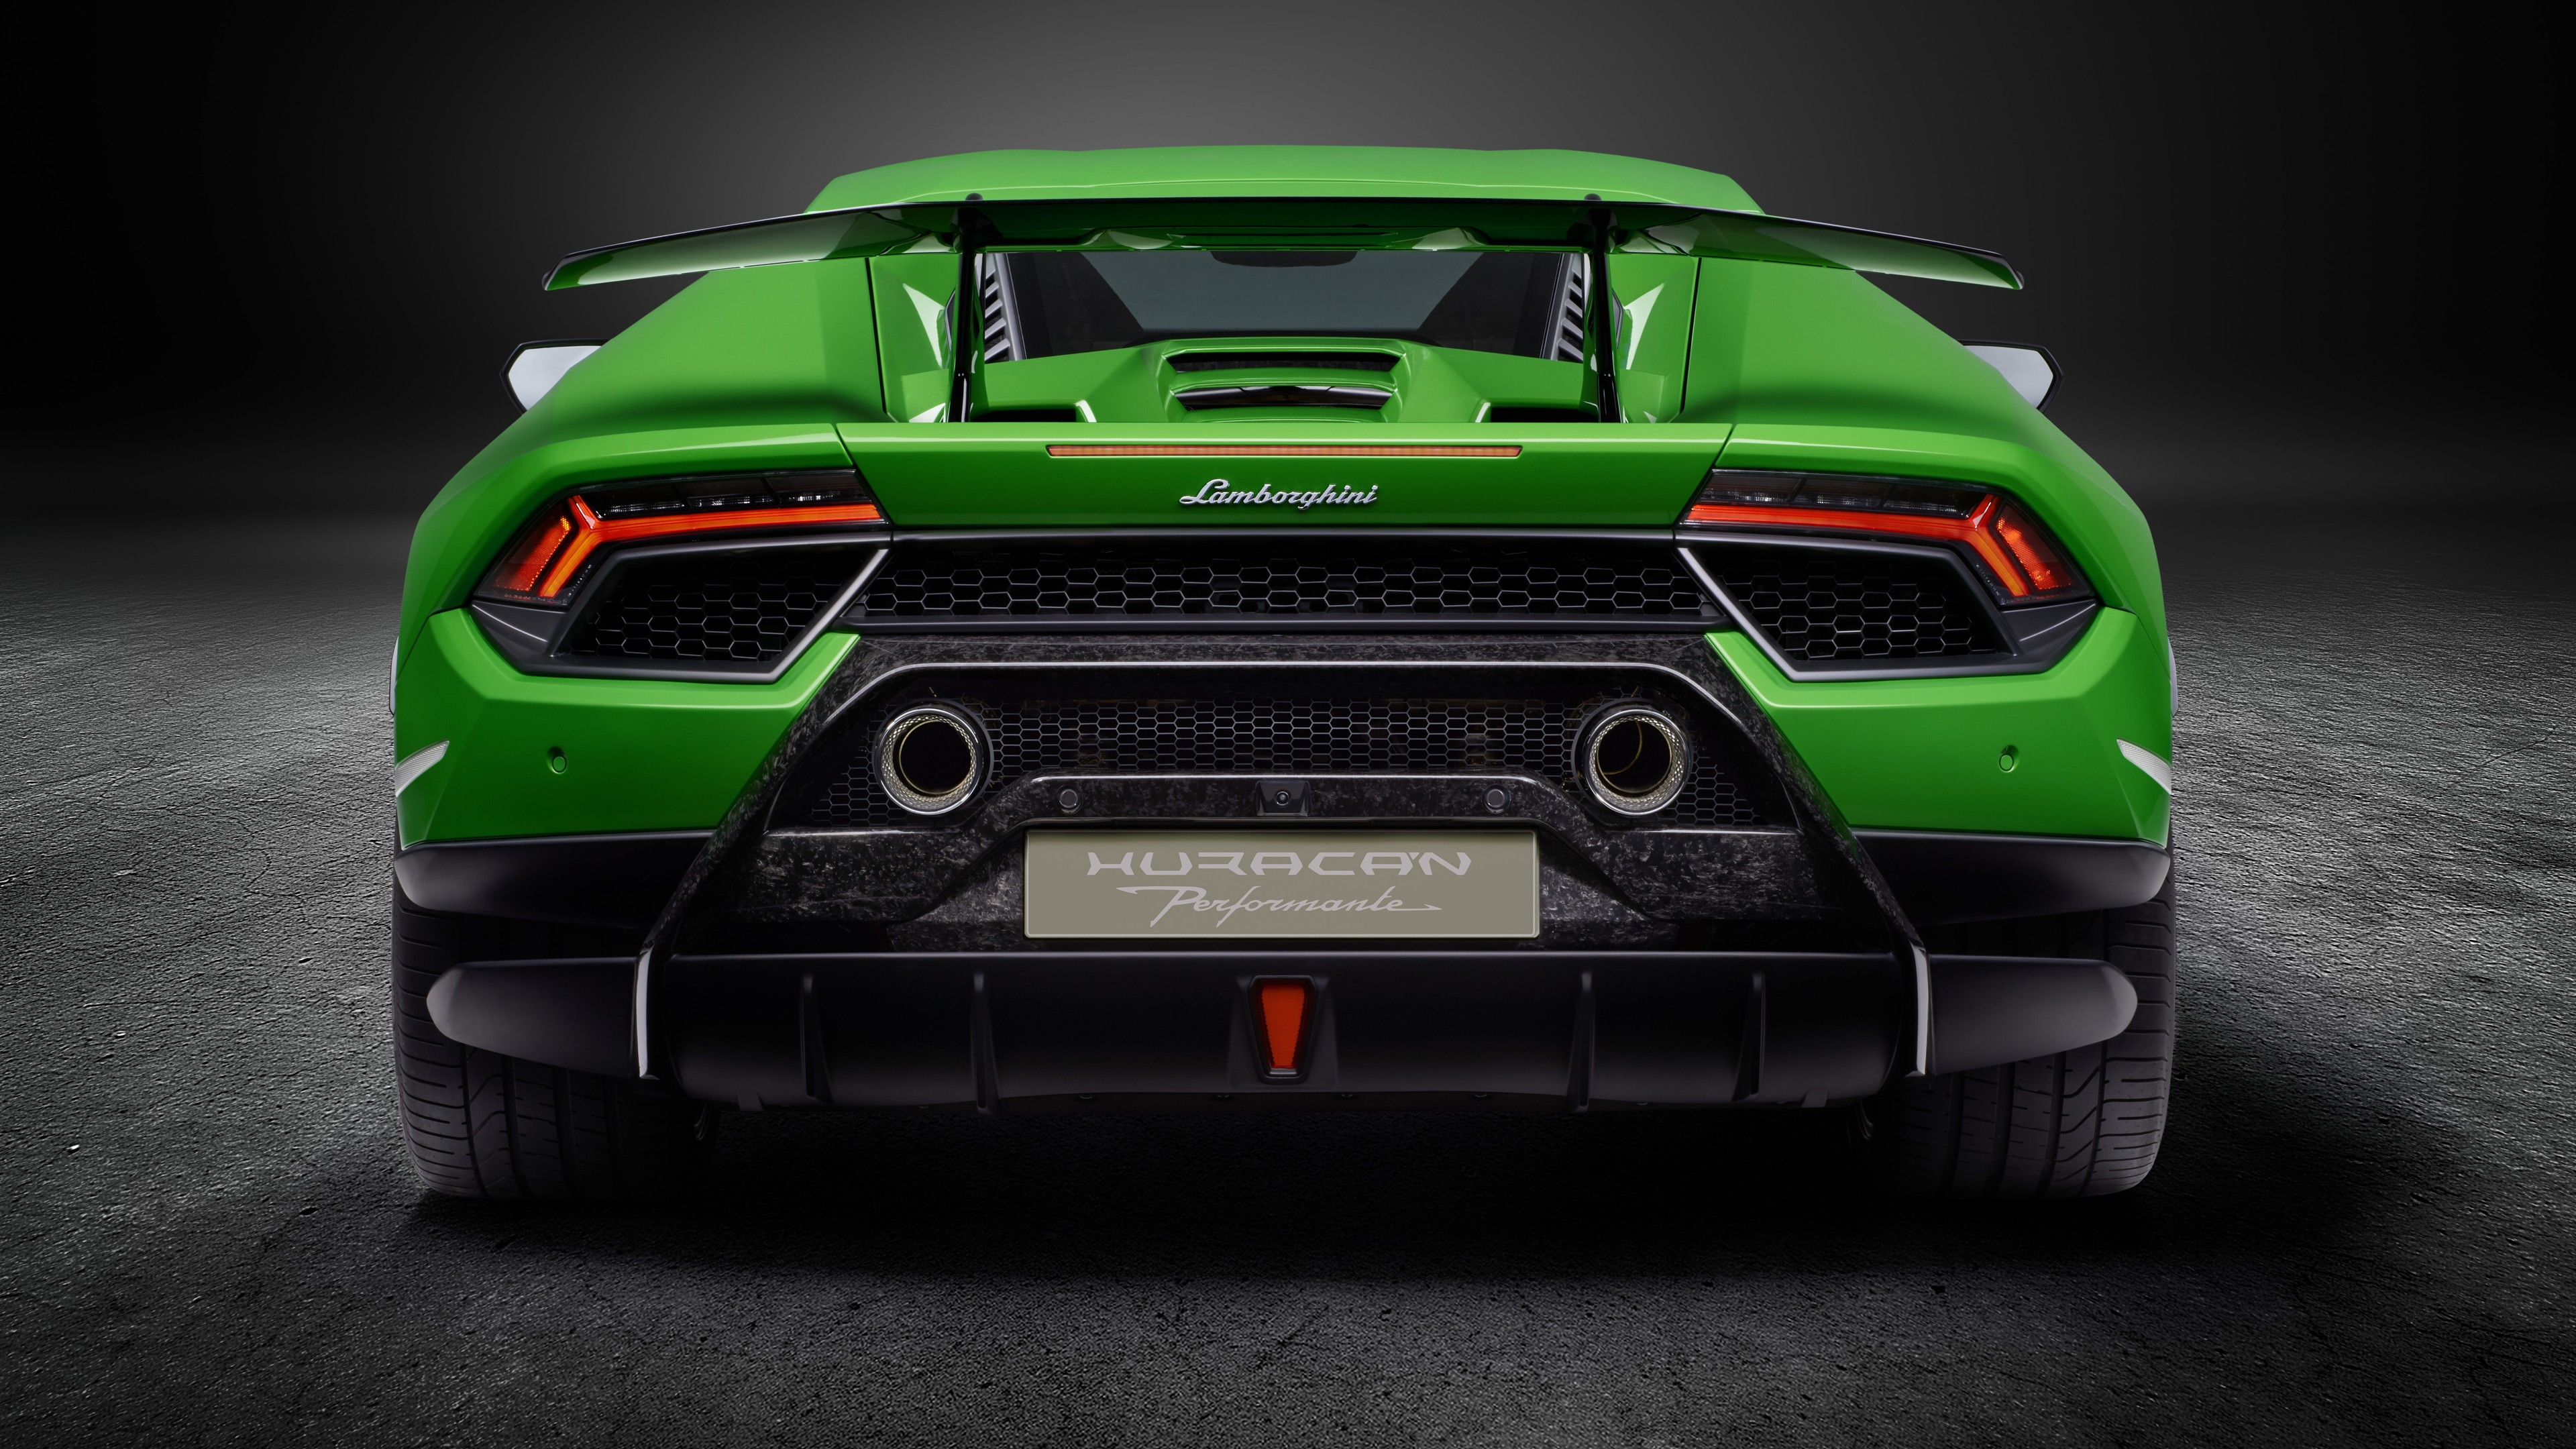 lamborghini huracan performante 2019 rear view 1539111464 - Lamborghini Huracan Performante 2019 Rear View - lamborghini wallpapers, lamborghini huracan wallpapers, lamborghini huracan performante wallpapers, hd-wallpapers, cars wallpapers, 8k wallpapers, 5k wallpapers, 4k-wallpapers, 2018 cars wallpapers